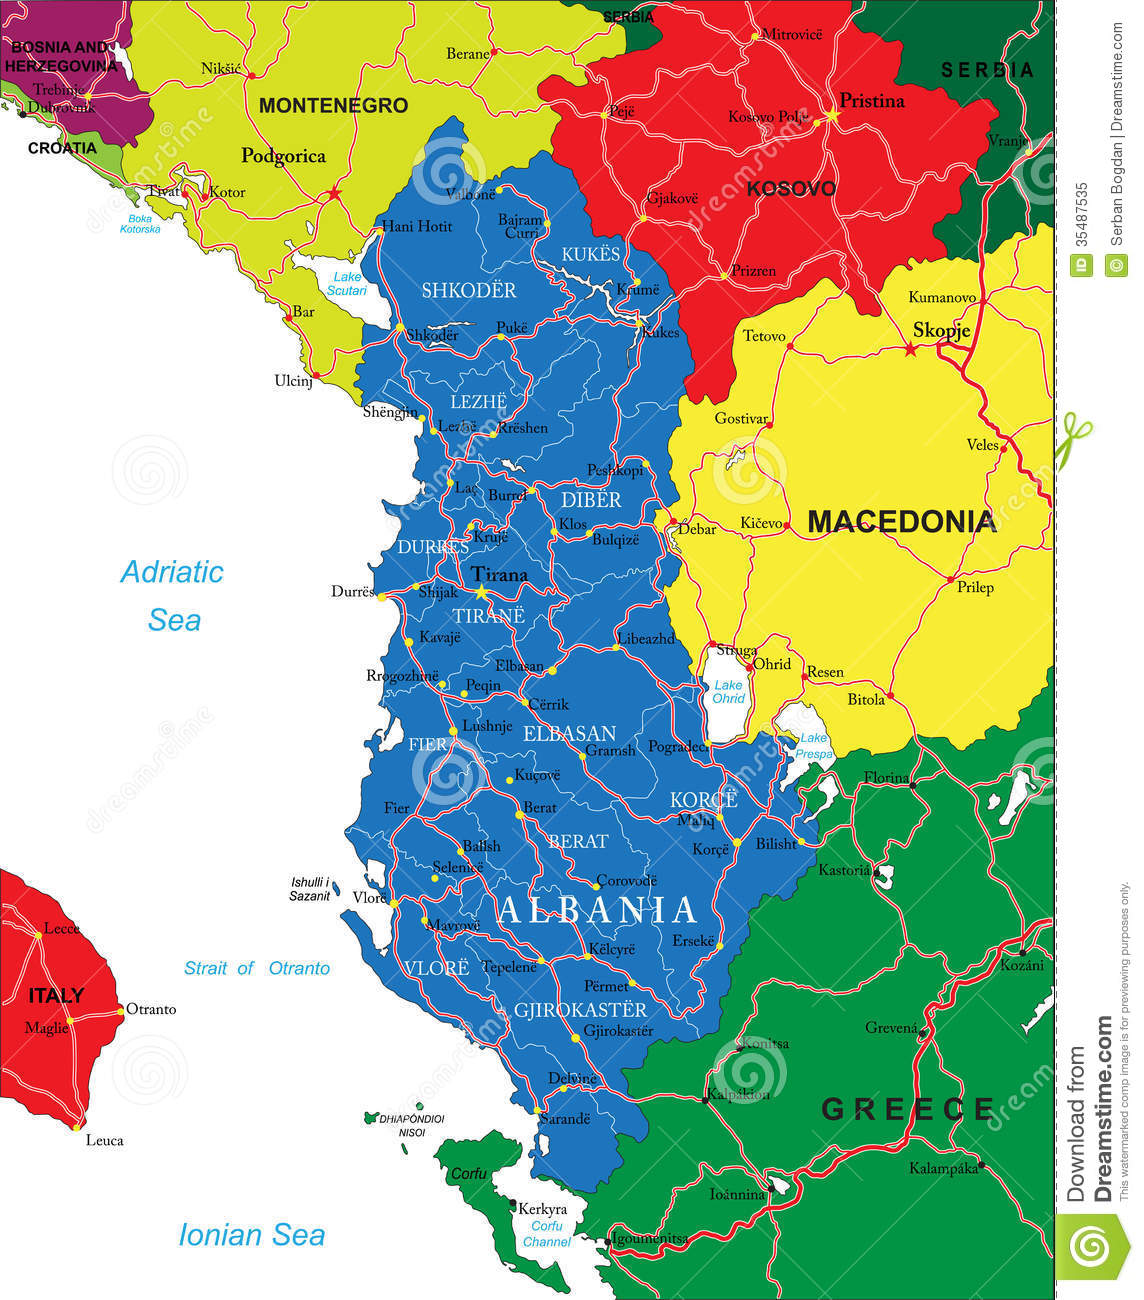 ... map of Albania with administrative regions, main cities and roads